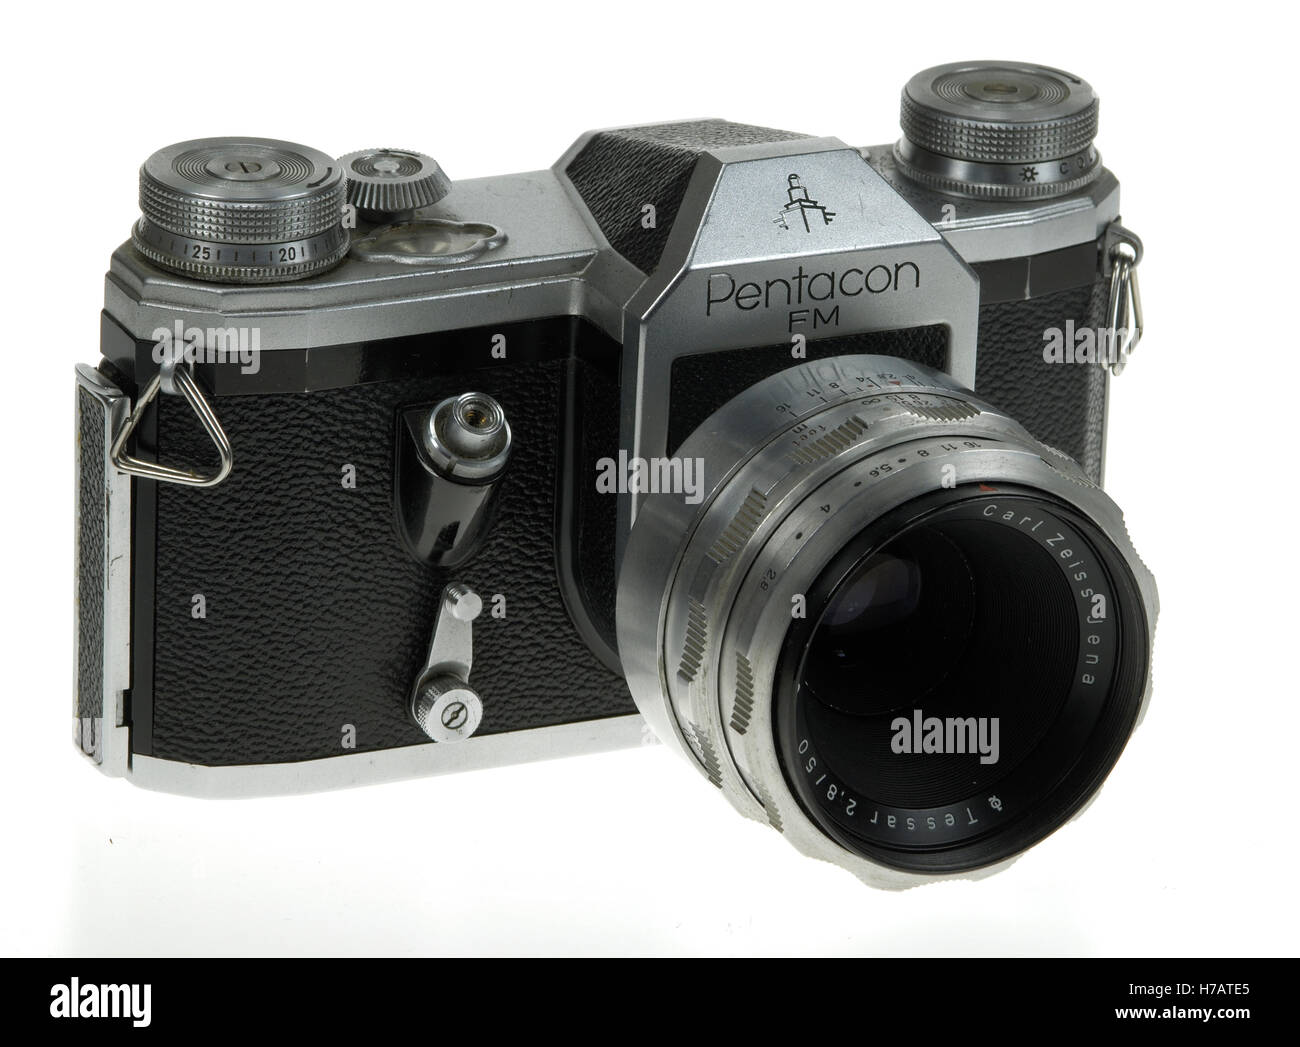 Pentacon FM SLR Camera circa 1957 - Stock Image